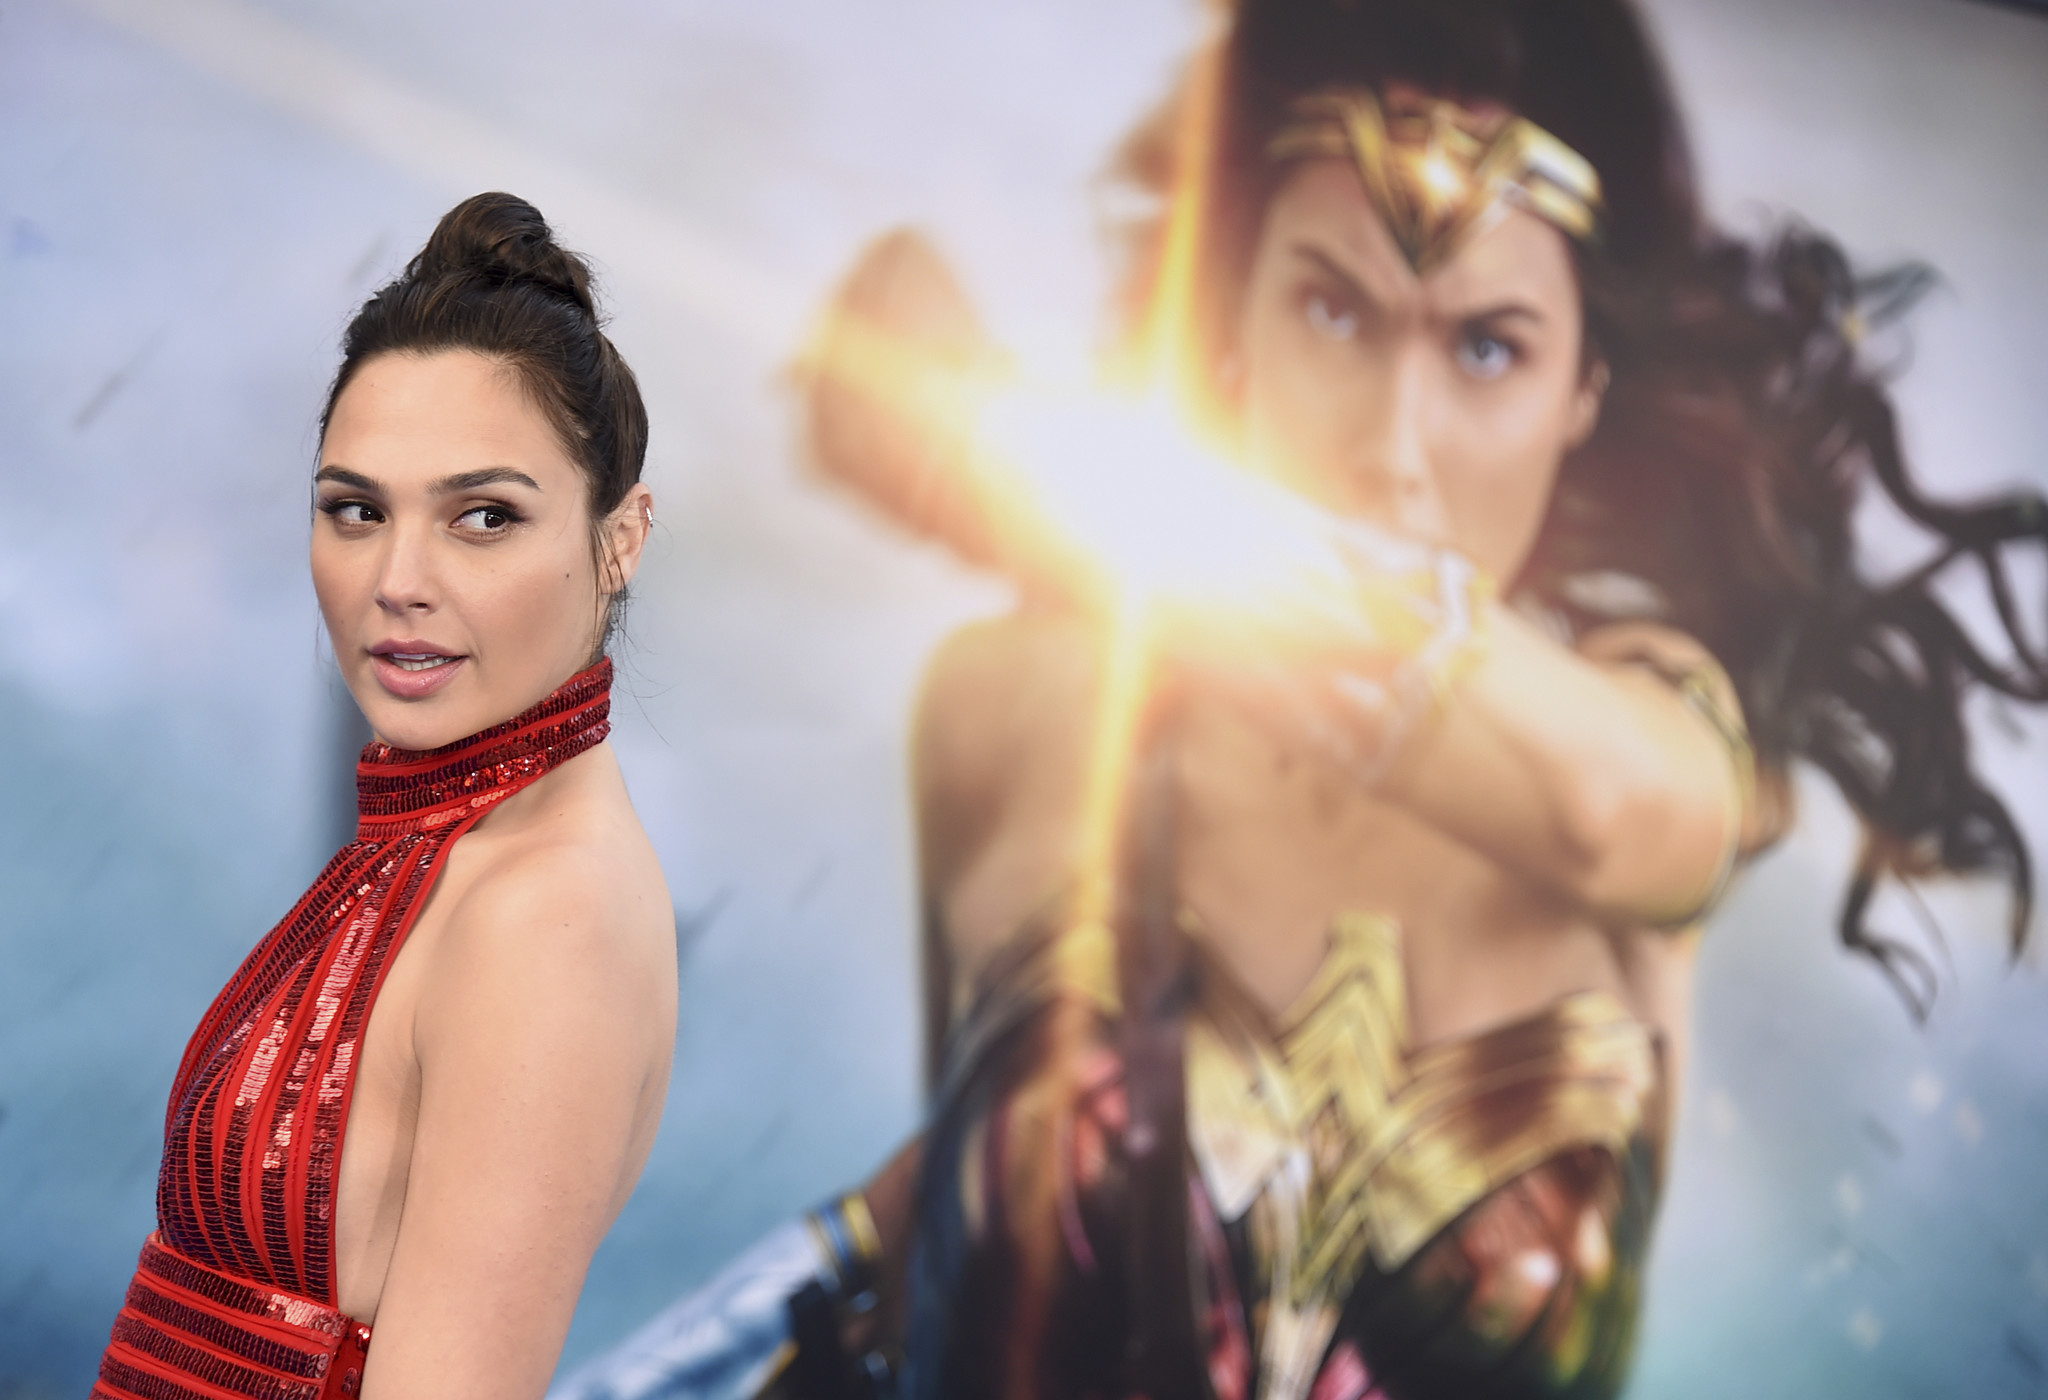 Wonder Woman Goes Past Rs 25 Crore At Indian Box-Office